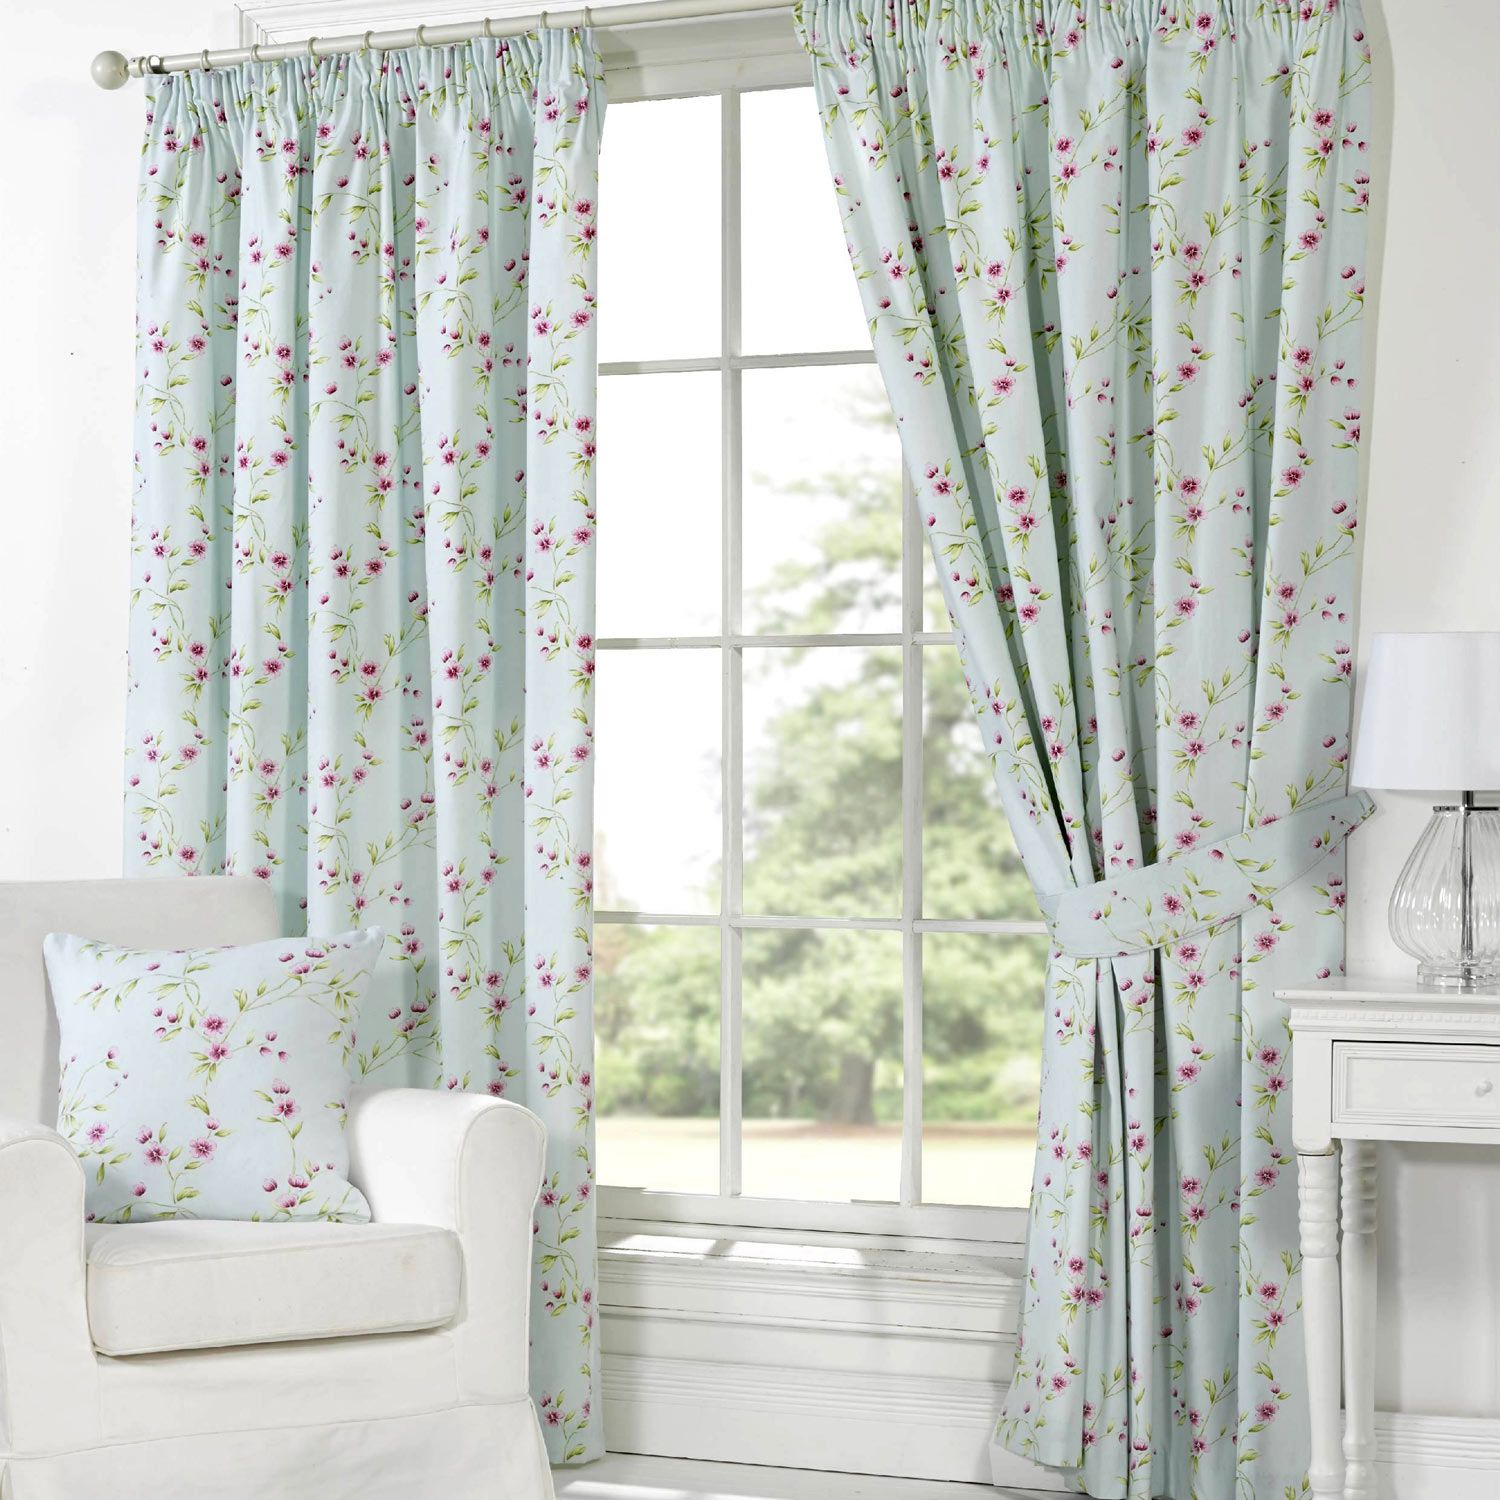 Pippa Floral Print Curtains   Duck Egg From £20